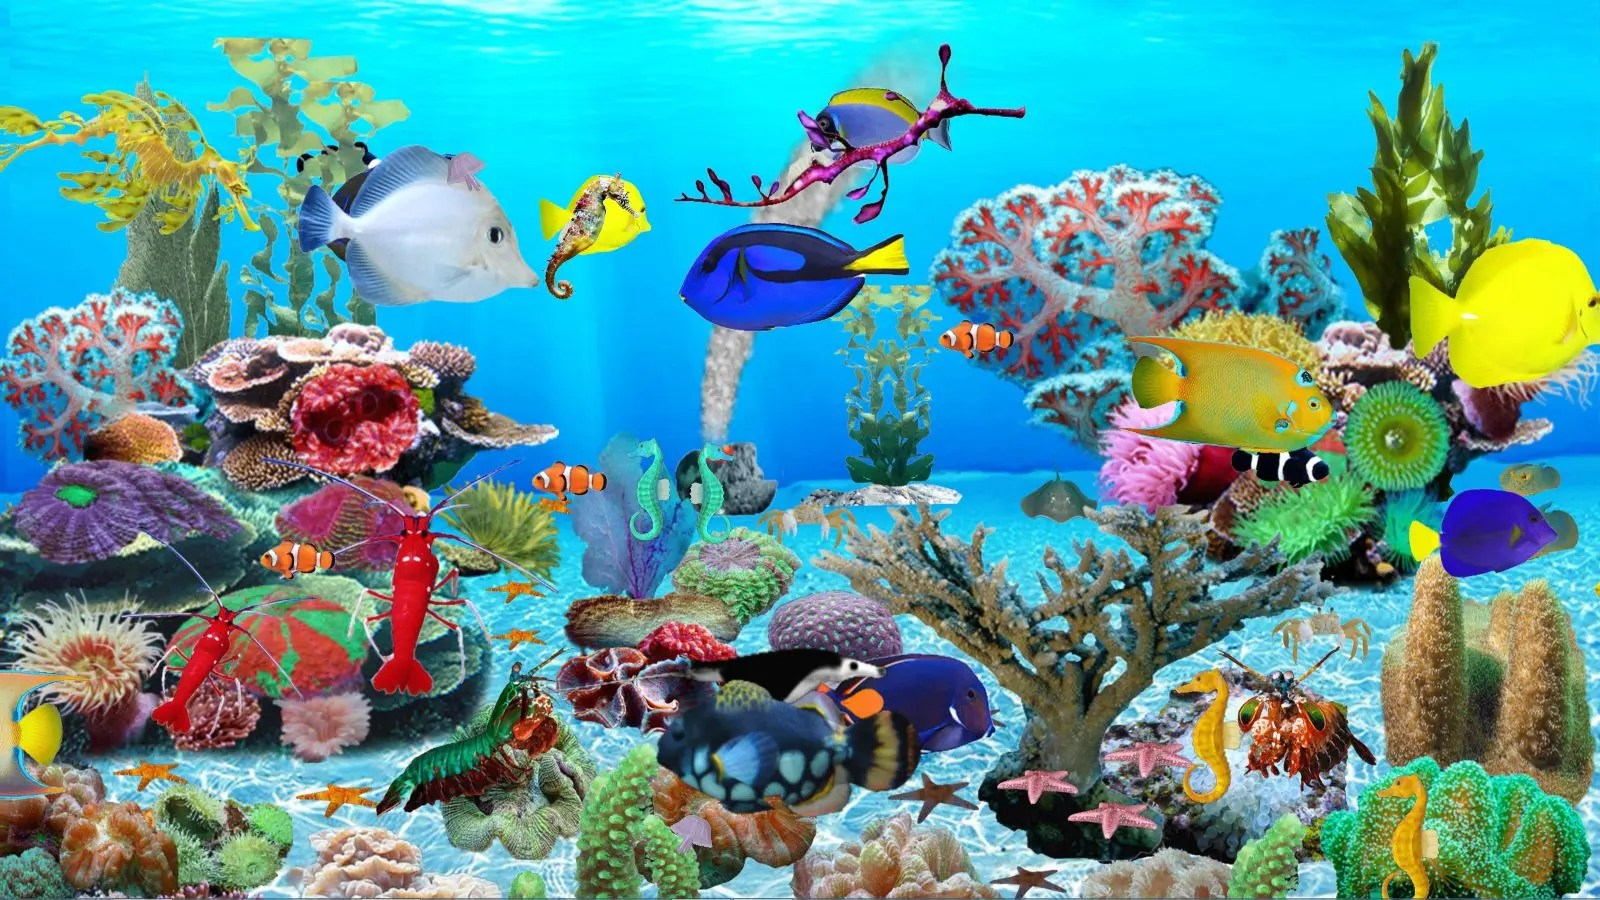 Tropical Ocean 3d Live Wallpaper Blue Ocean Aquarium Download